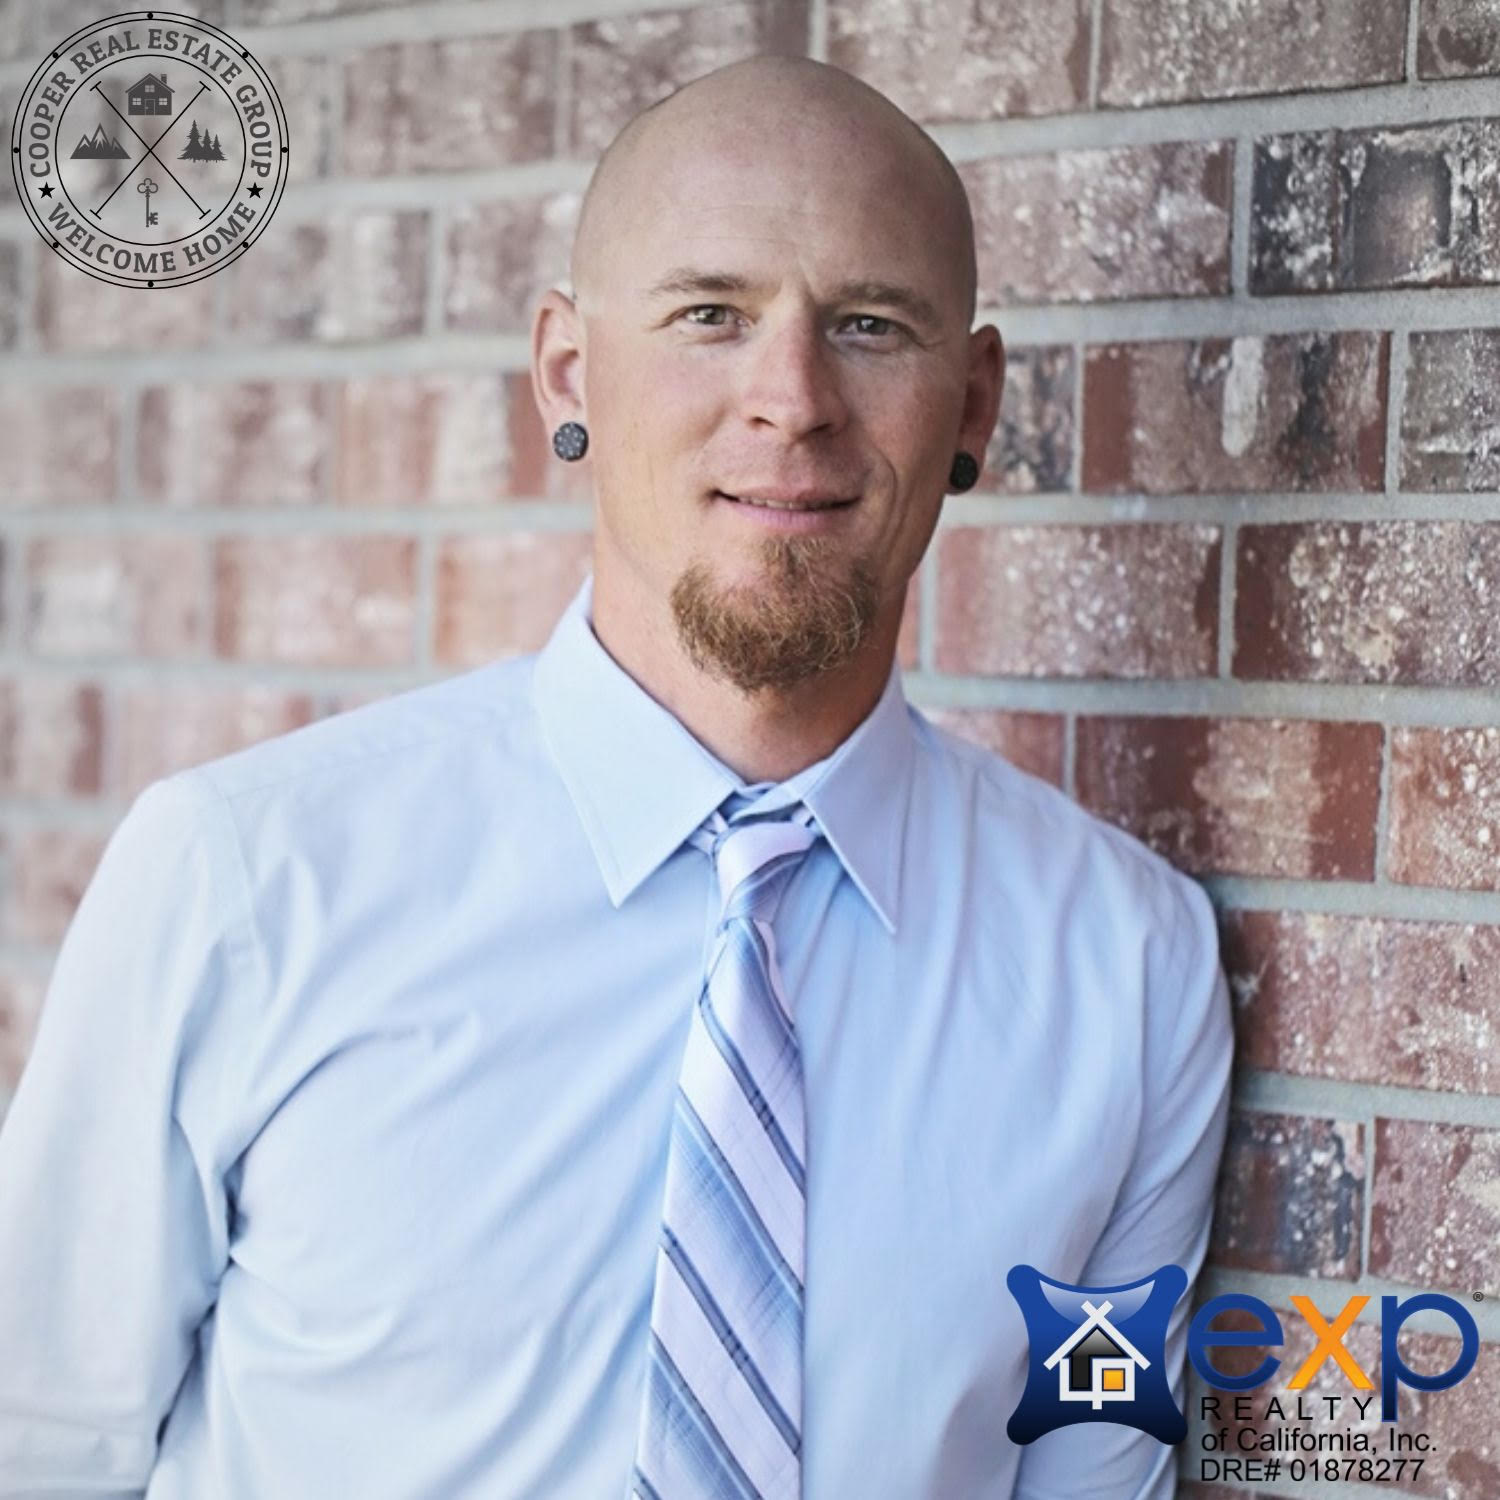 Realtor Justin Cooper leaning against a brick wall in a shirt and tie.